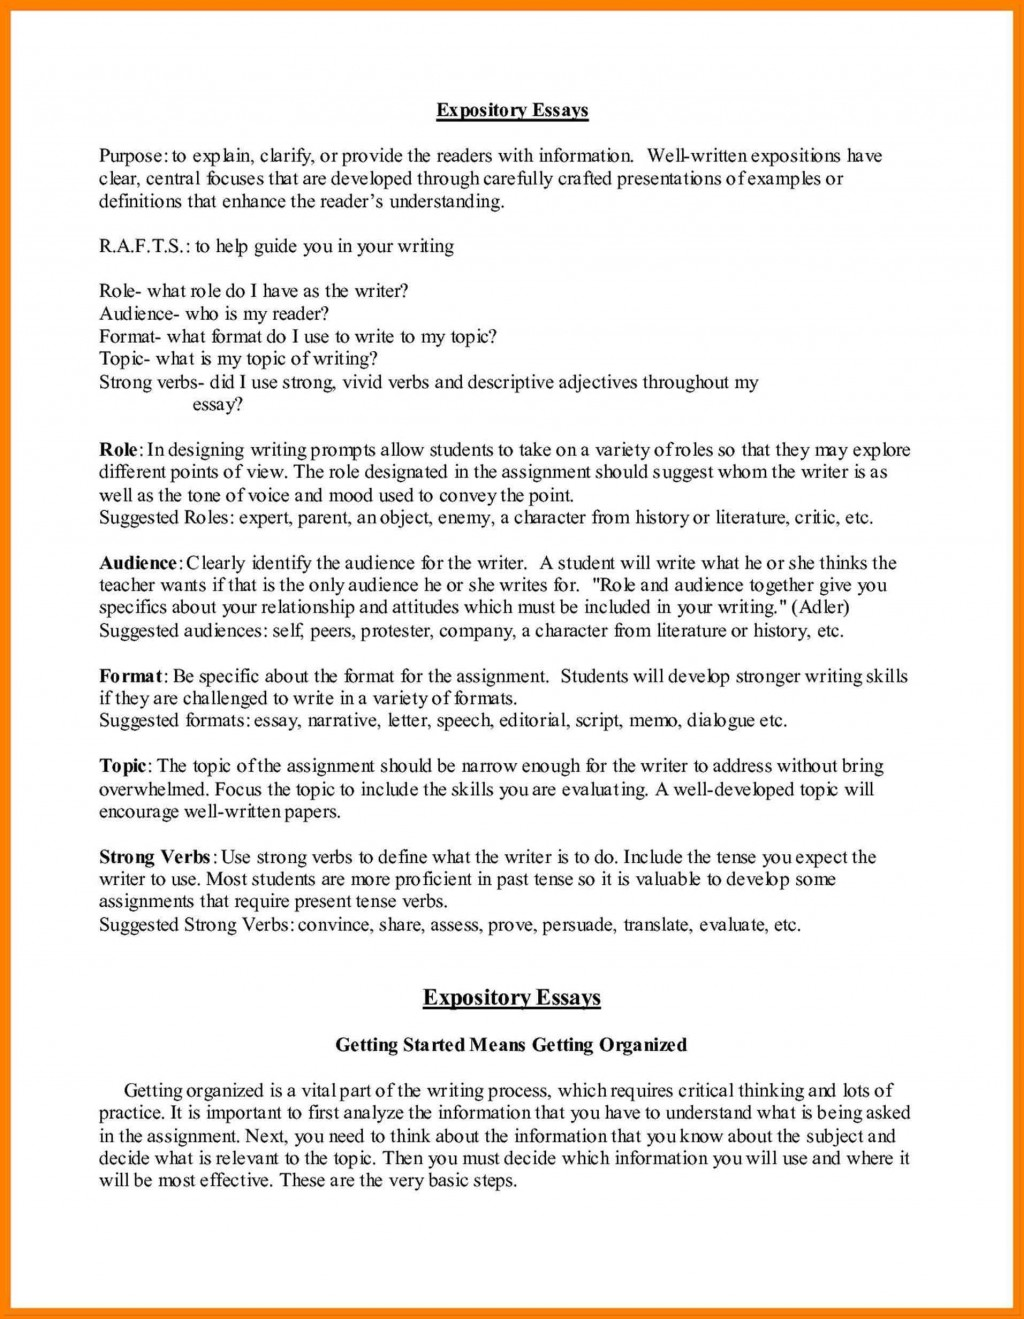 003 Essay Example Editorial Examples For High School Highschool Students With Expected Salary Sample Sat Promptssays Need Help My What To Say In Email Surprising Pdf Free Large